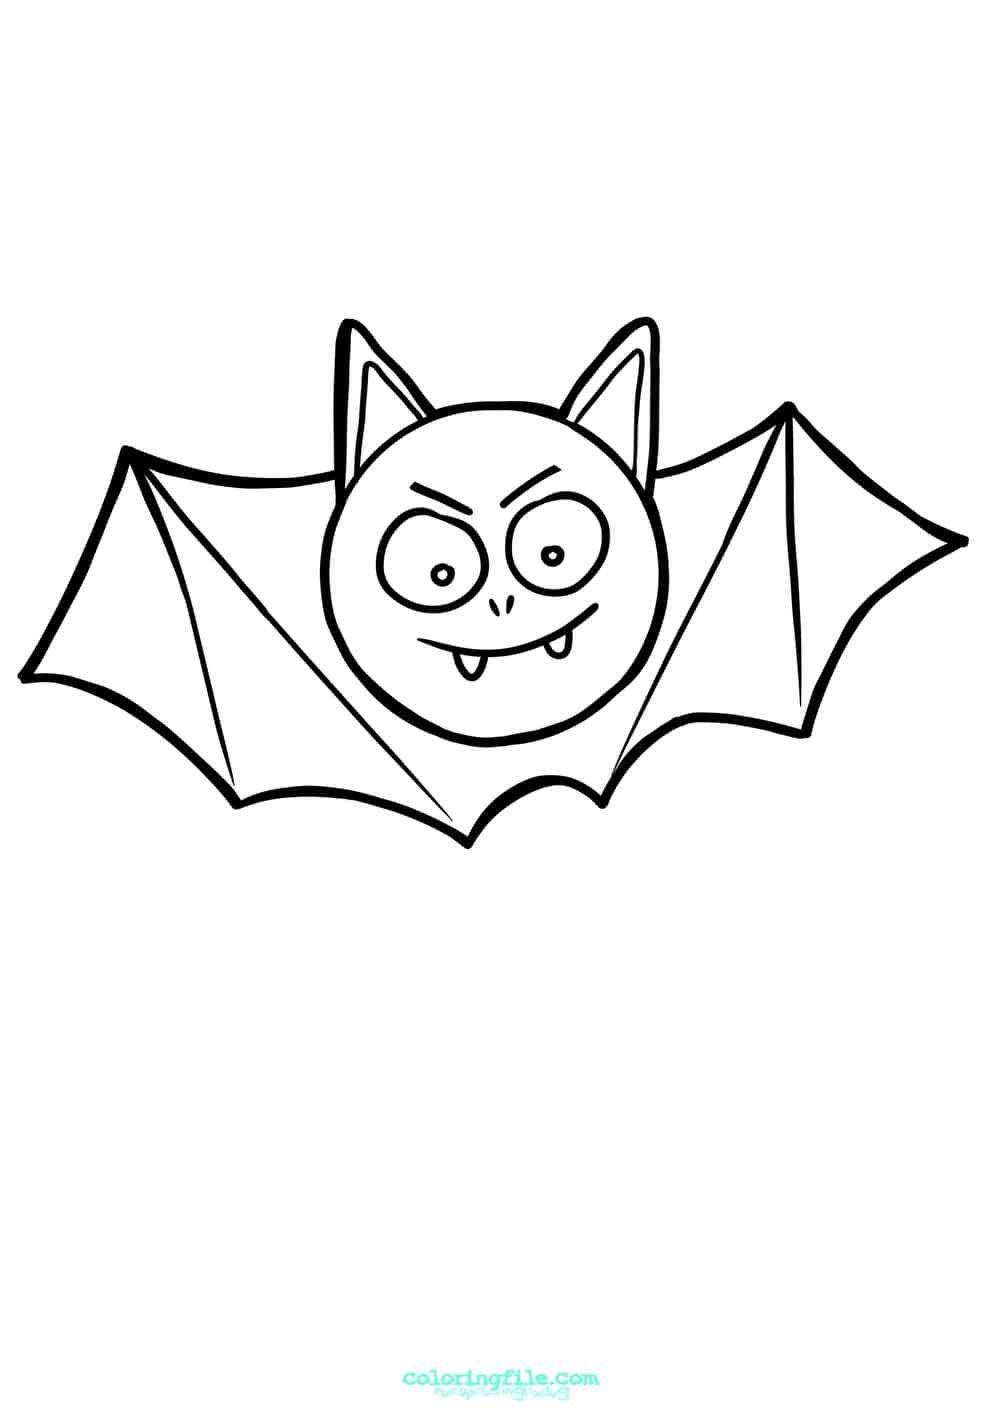 Easy Halloween Bat Coloring Pages Bat Coloring Pages Halloween Coloring Pages Halloween Coloring